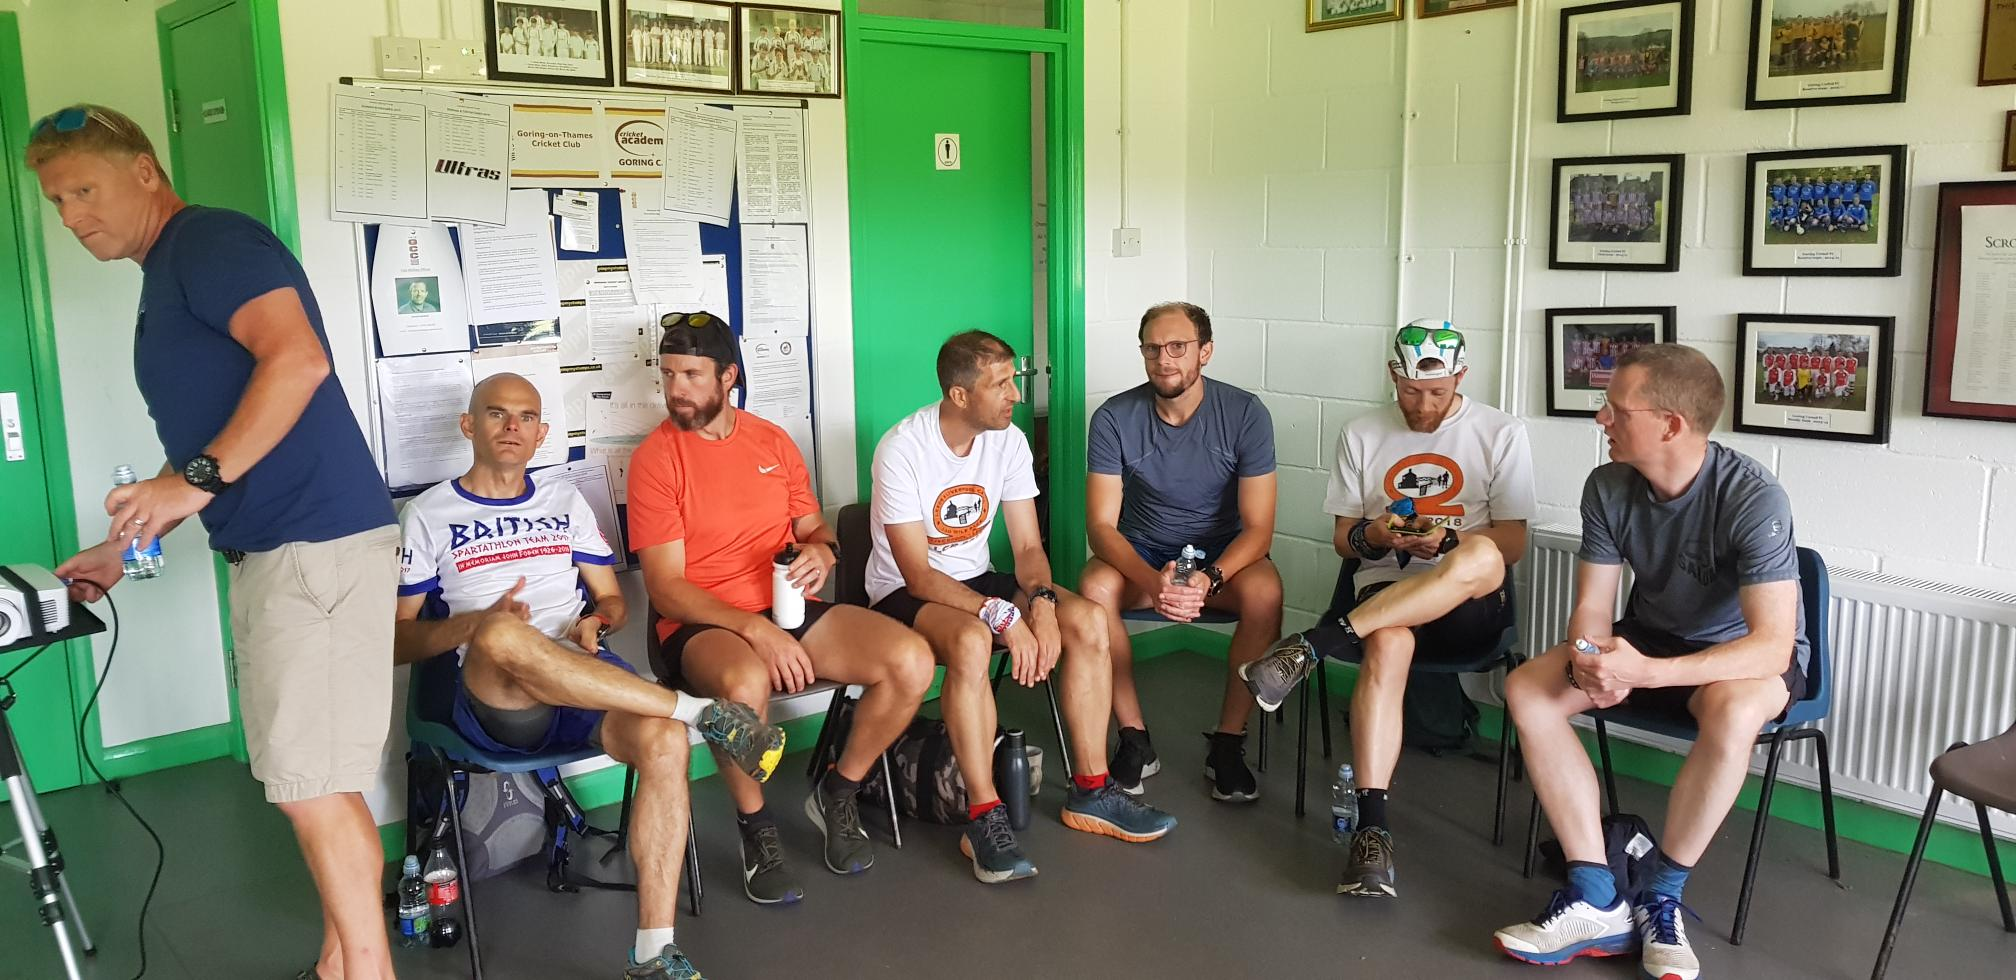 Shane (on the far left) has all the gear AND all the wise ideas….which cannot always be said for the British Spartathlon 2019 Team….only joking Ian x